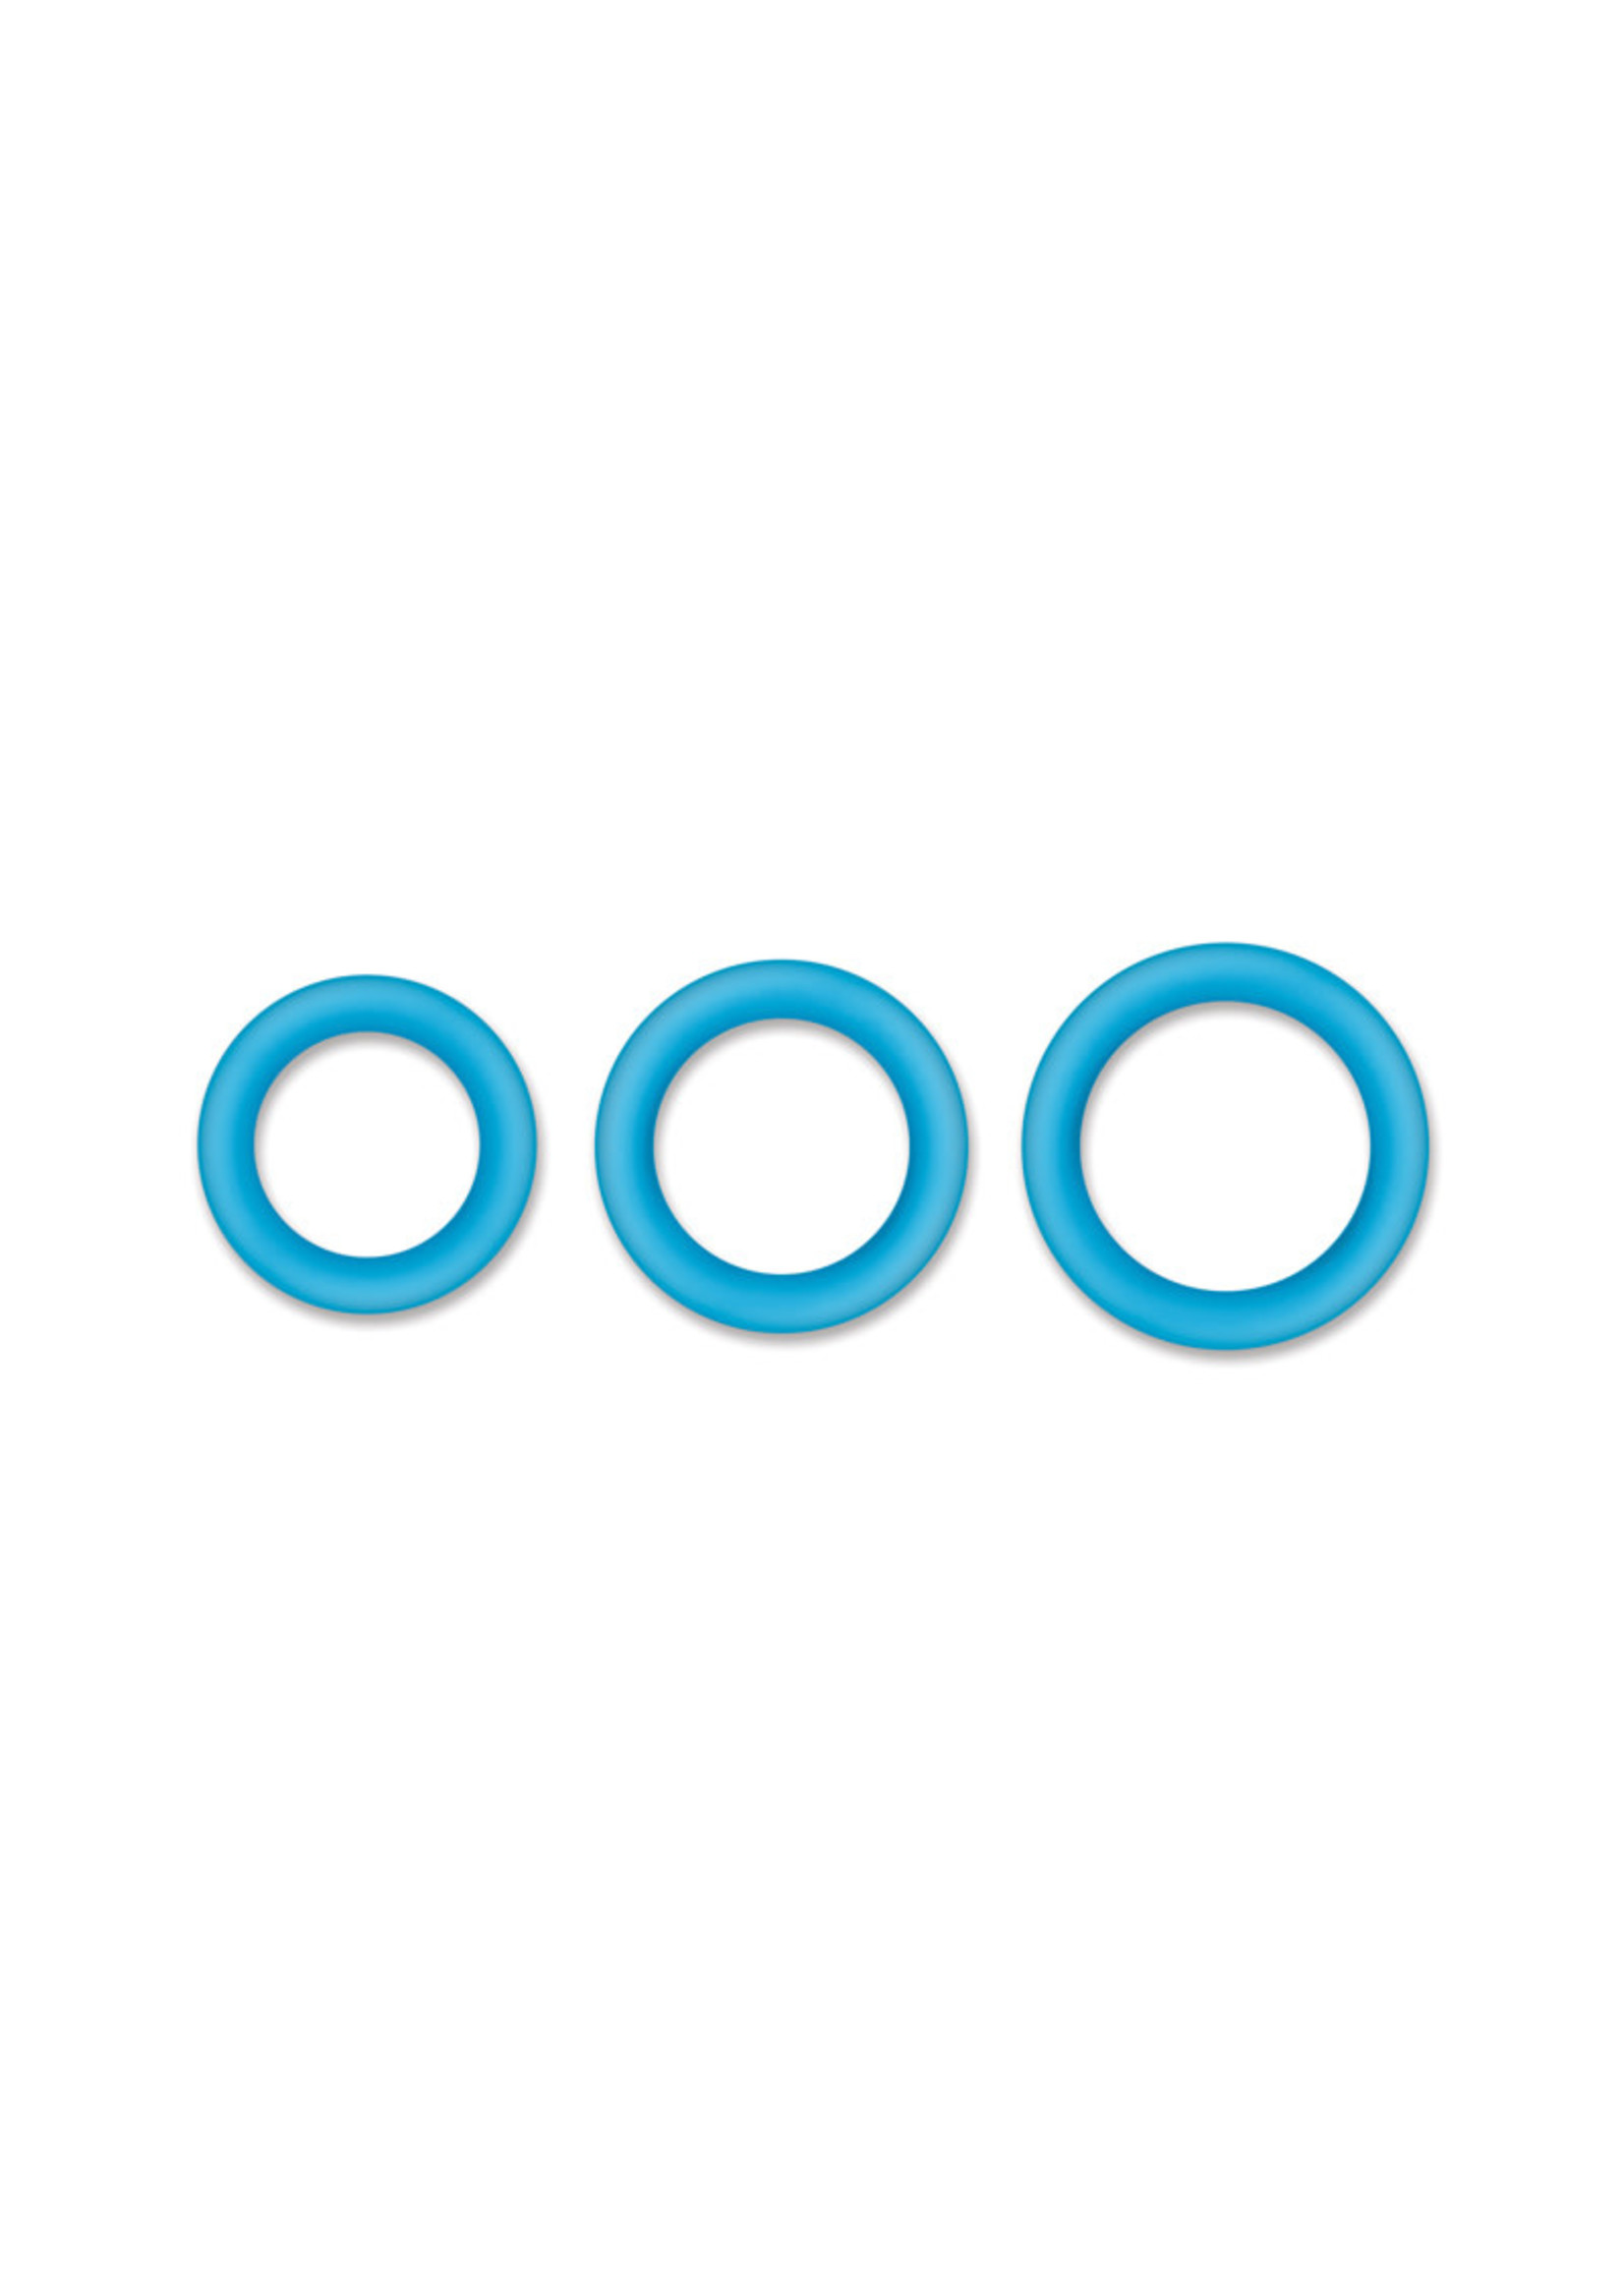 NS Novelties Firefly - Halo - 50mm Cockring - Small - Blue